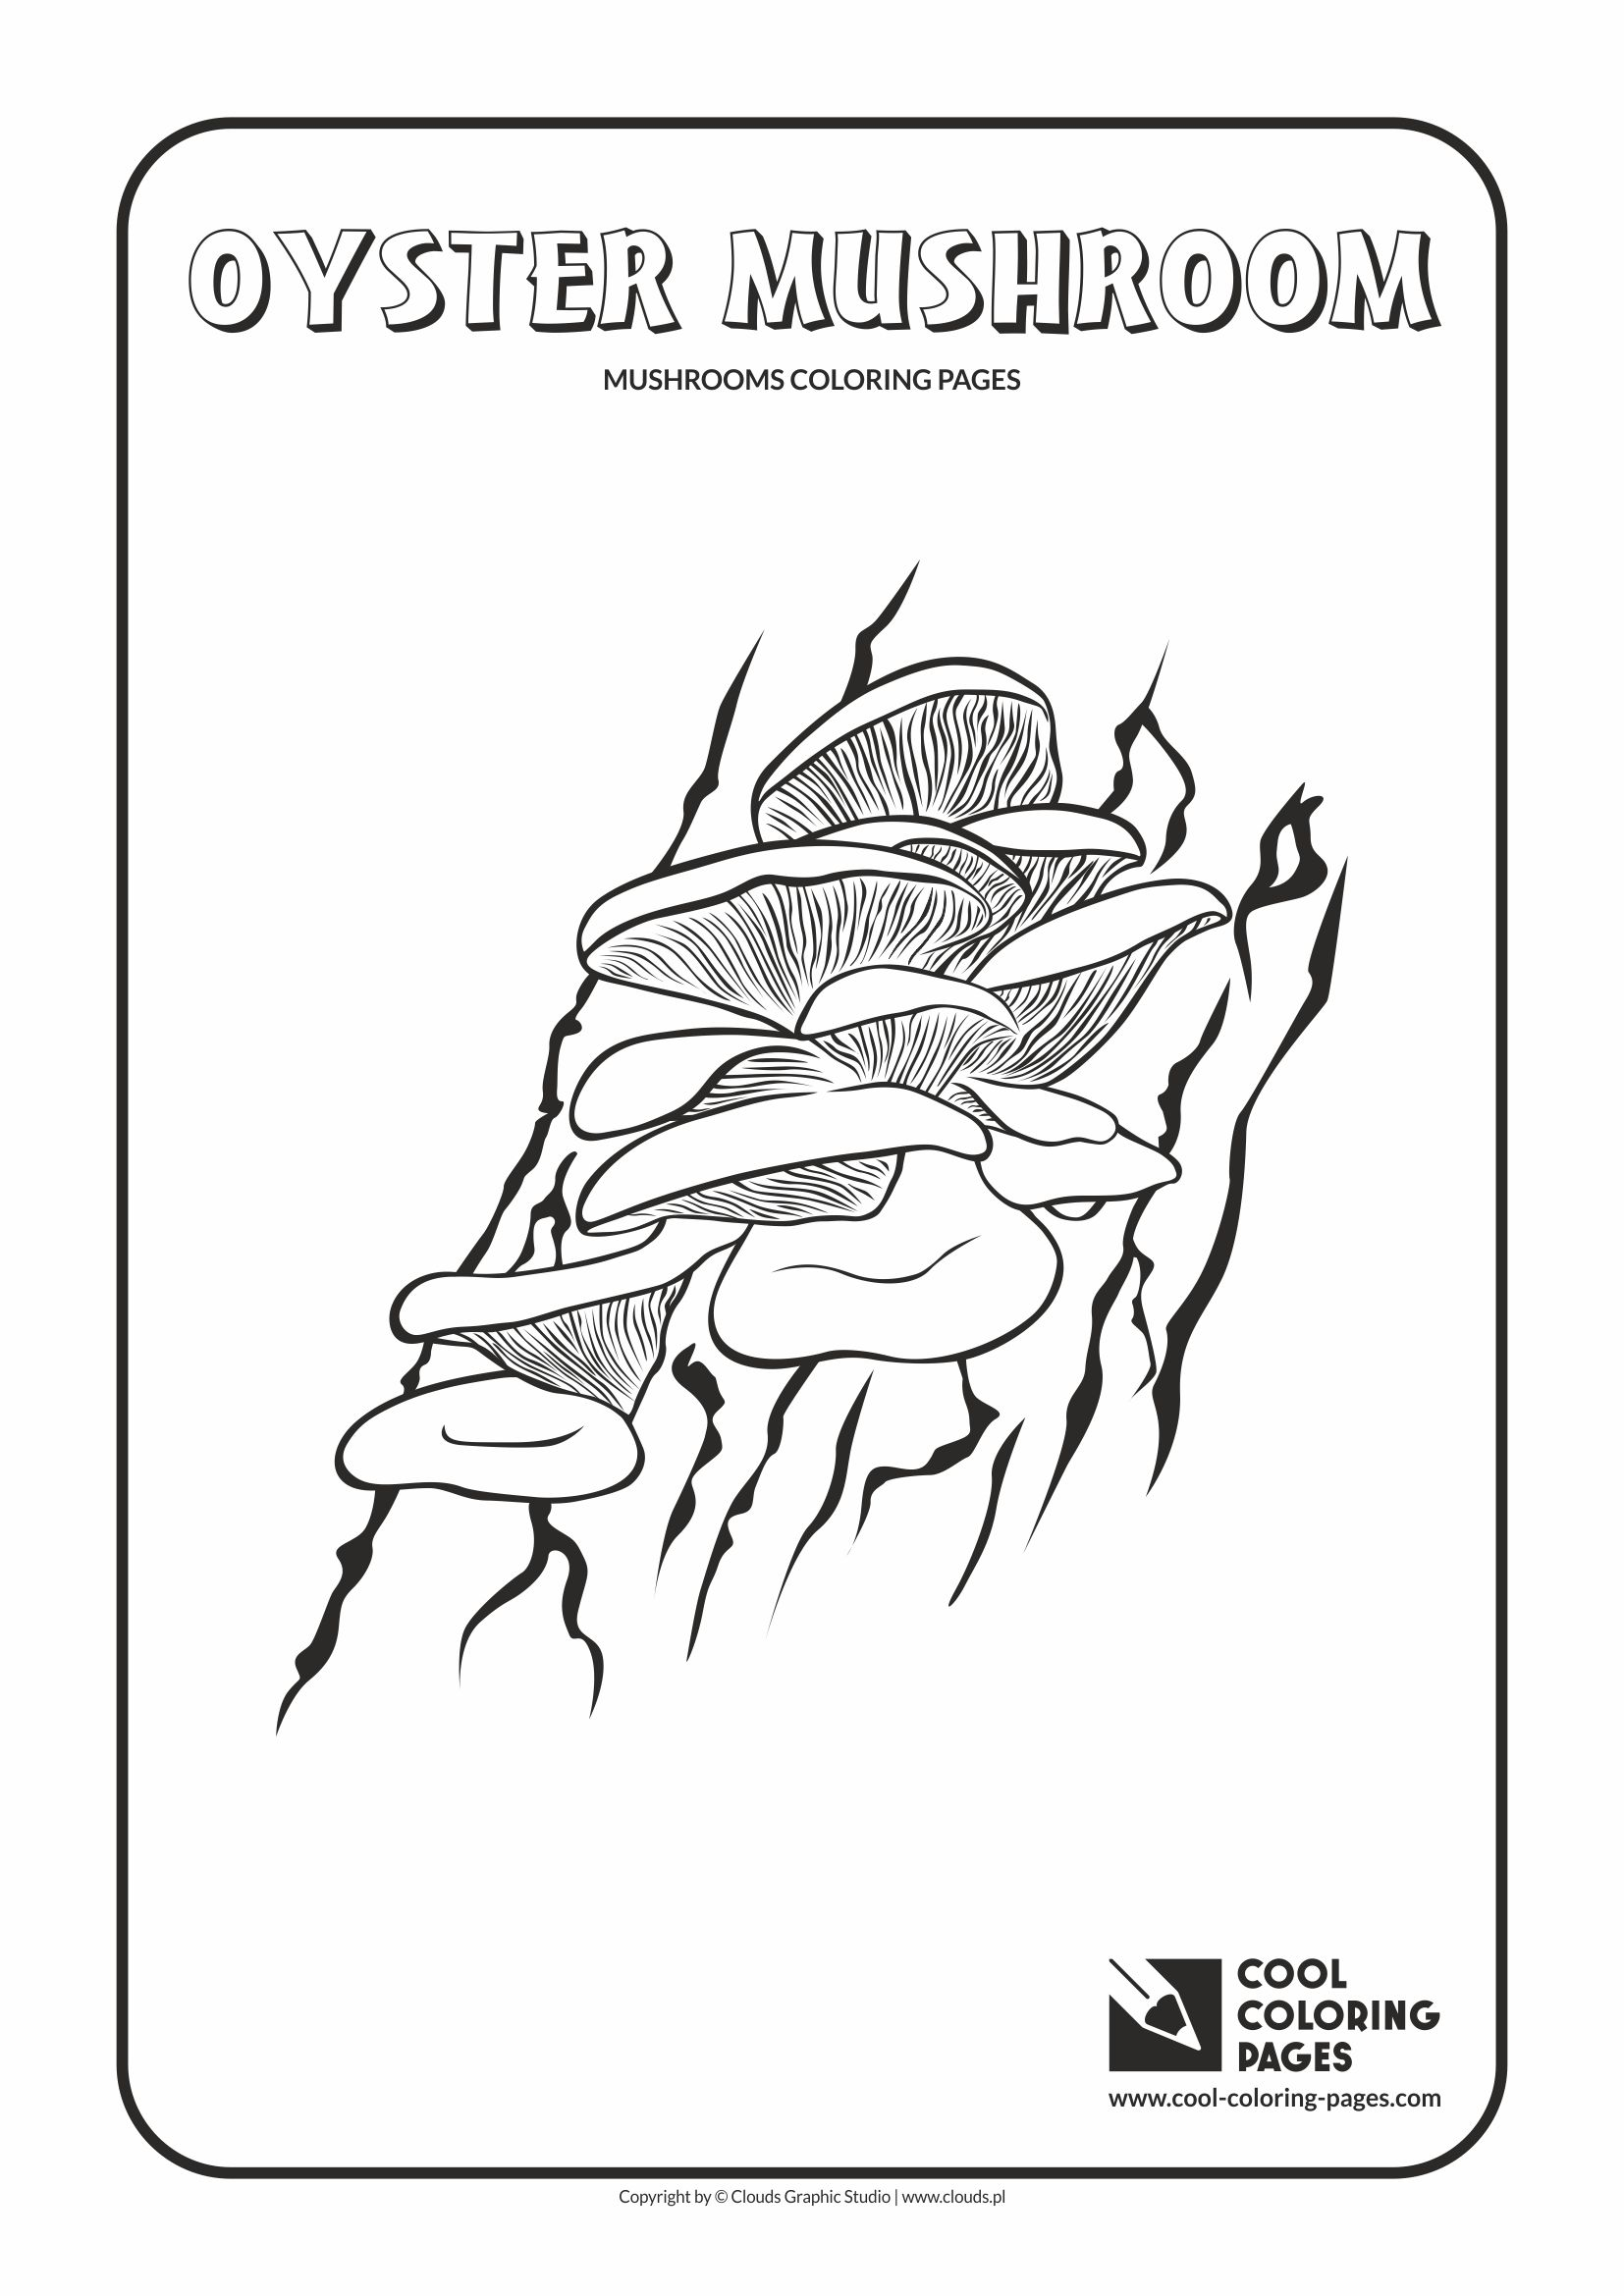 Cool Coloring Pages Mushrooms Coloring Pages